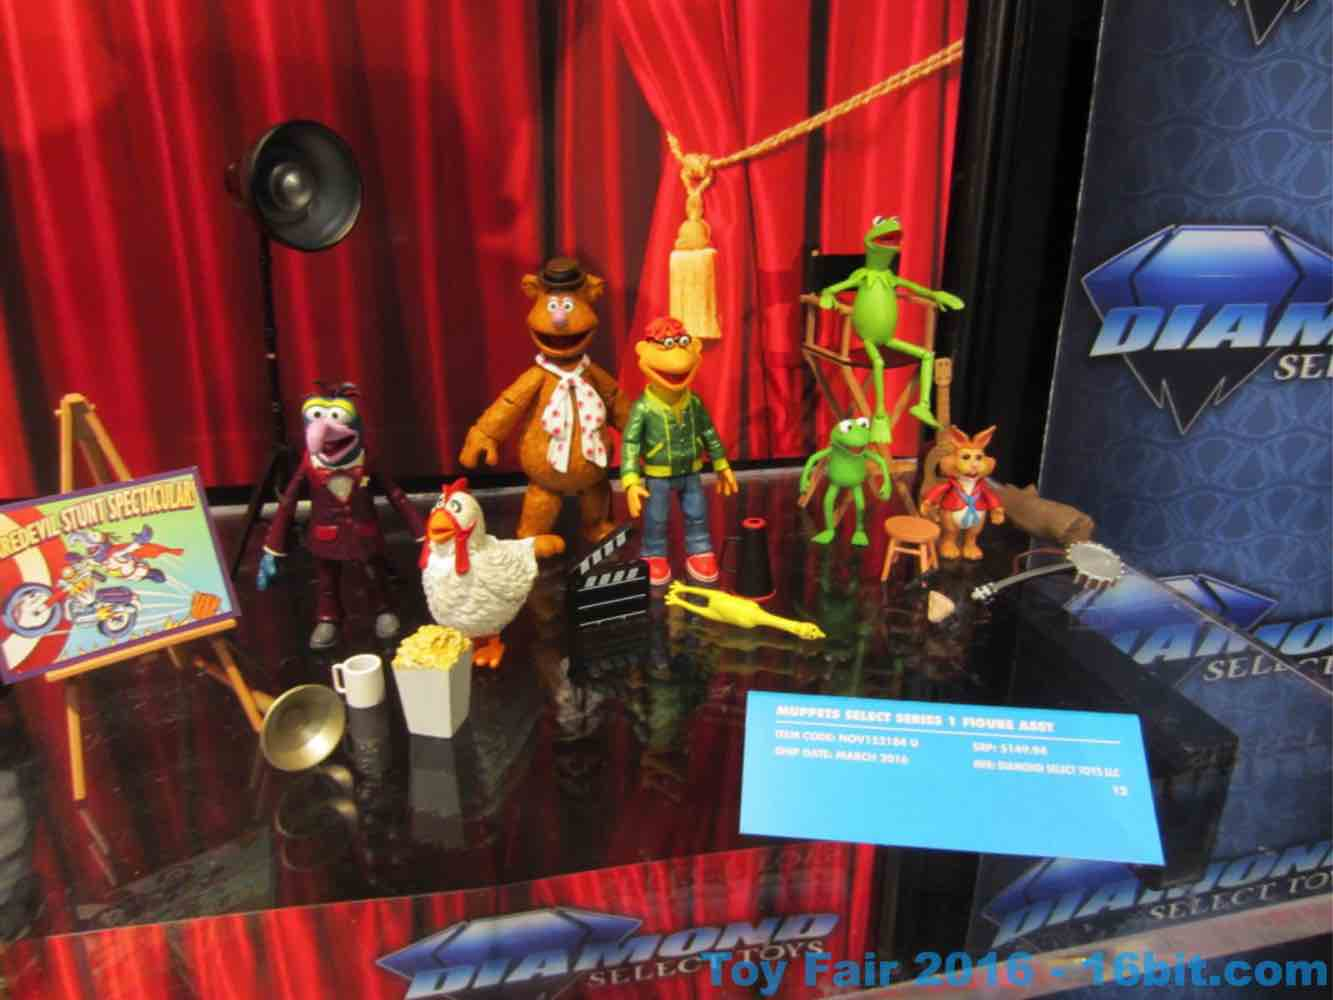 16bit com: Toy Fair Coverage of Diamond Select Toys Muppets